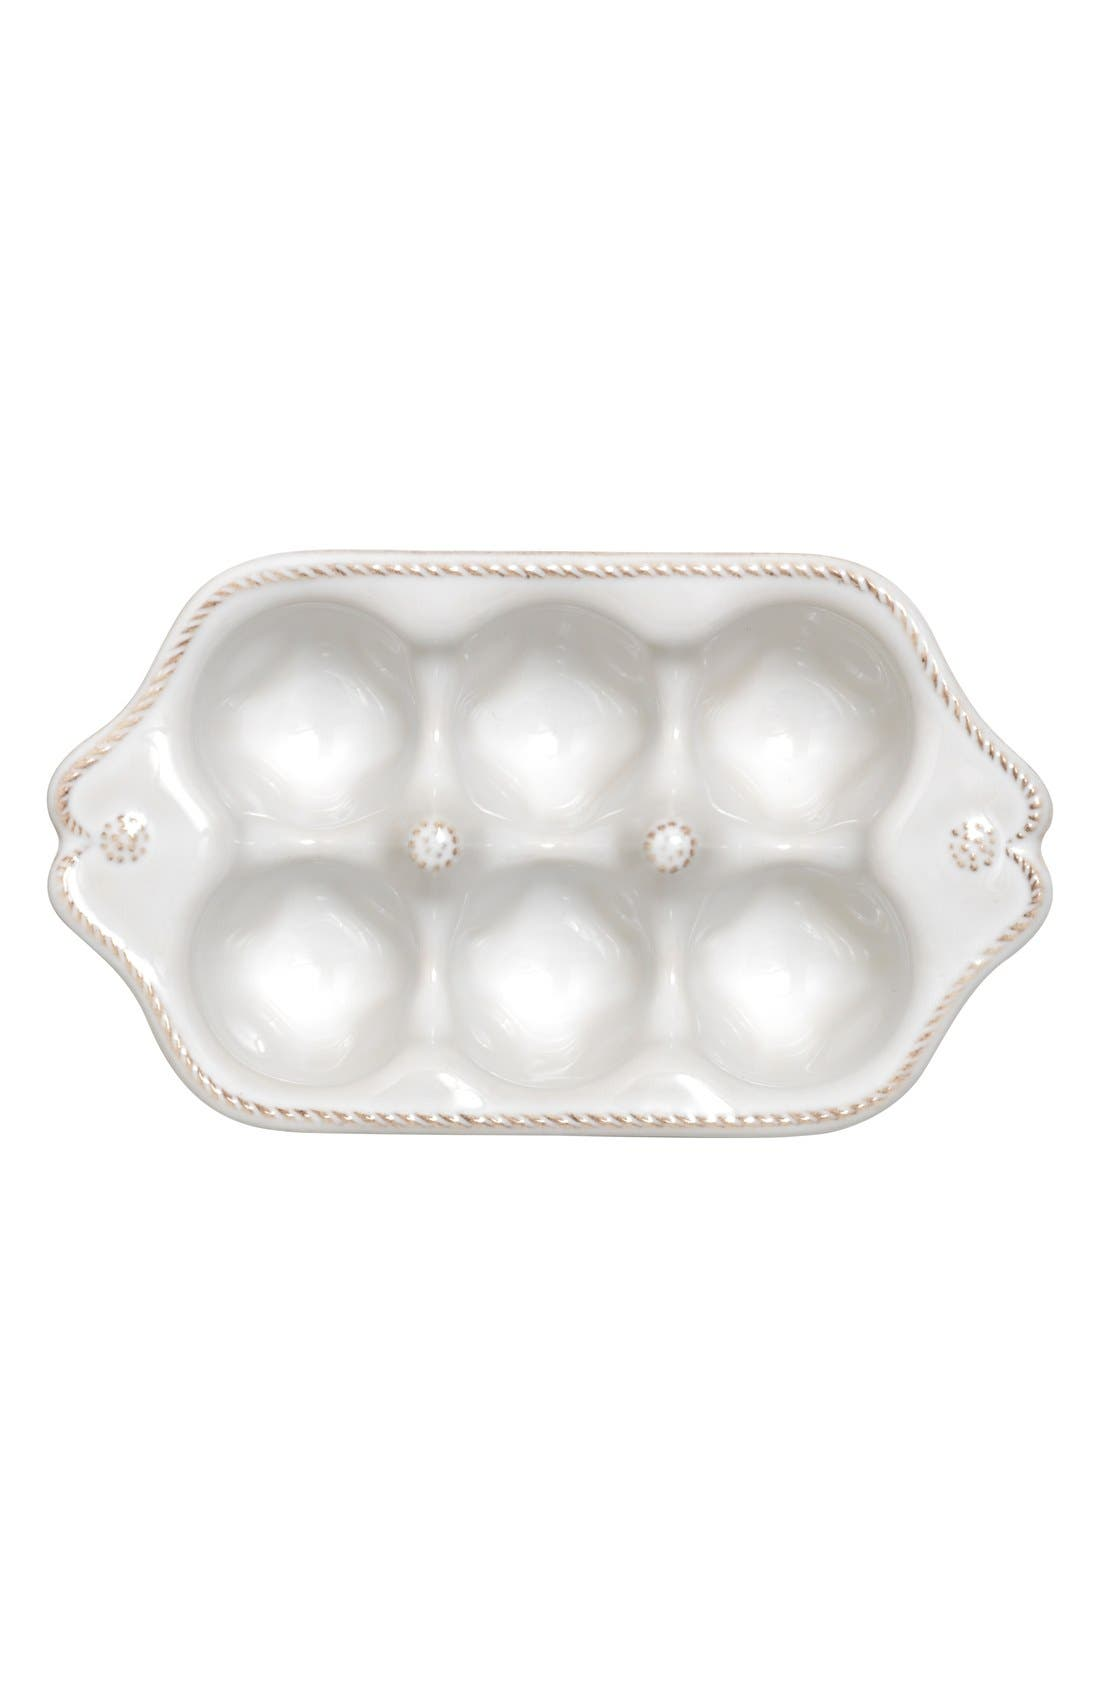 'Berry and Thread' Small Egg Crate,                             Alternate thumbnail 4, color,                             WHITEWASH